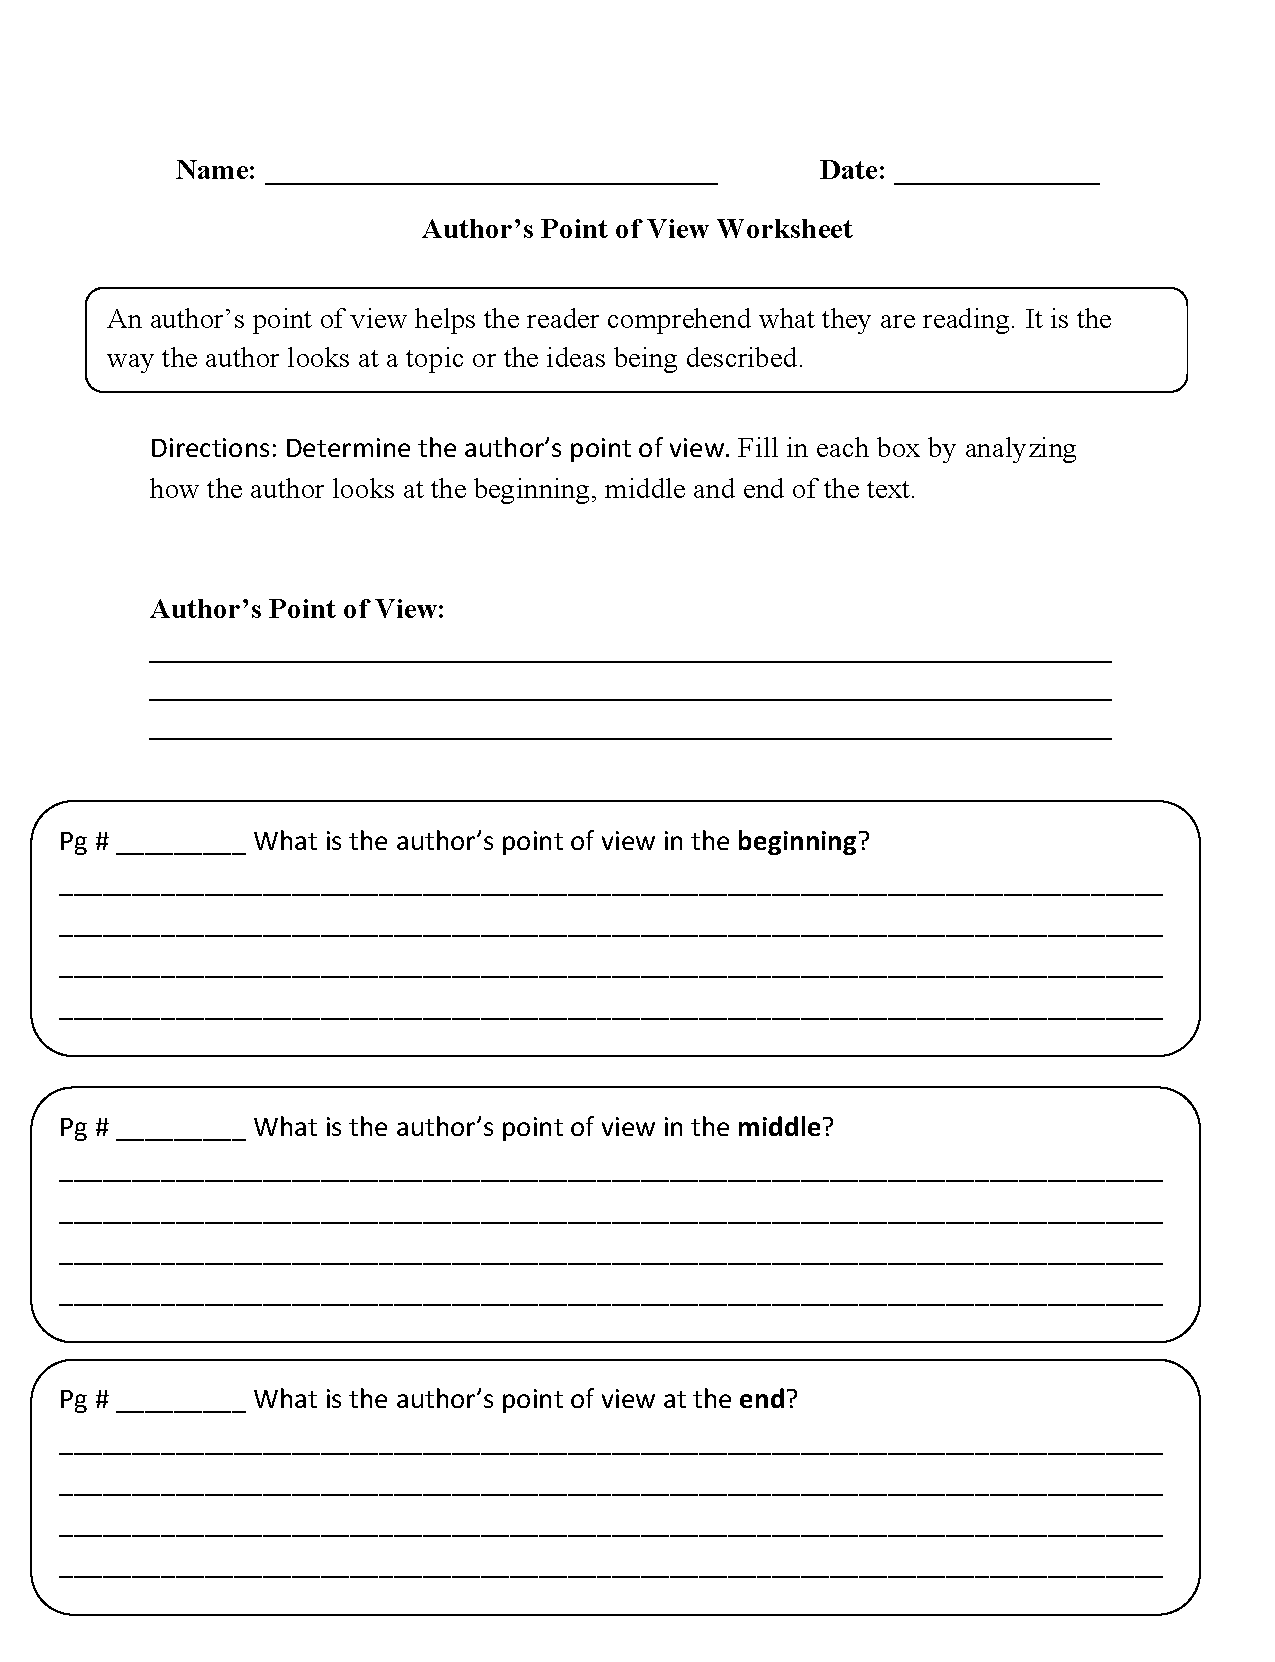 Weirdmailus  Pleasing Englishlinxcom  Point Of View Worksheets With Likable Point Of View Worksheets With Amazing Adding And Subtracting Negative And Positive Fractions Worksheet Also Grade  Activity Worksheets In Addition Phonic Printable Worksheets And Alphabet Recognition Worksheets For Preschool As Well As Maths Worksheets Uk Additionally Adverb Worksheet Ks From Englishlinxcom With Weirdmailus  Likable Englishlinxcom  Point Of View Worksheets With Amazing Point Of View Worksheets And Pleasing Adding And Subtracting Negative And Positive Fractions Worksheet Also Grade  Activity Worksheets In Addition Phonic Printable Worksheets From Englishlinxcom